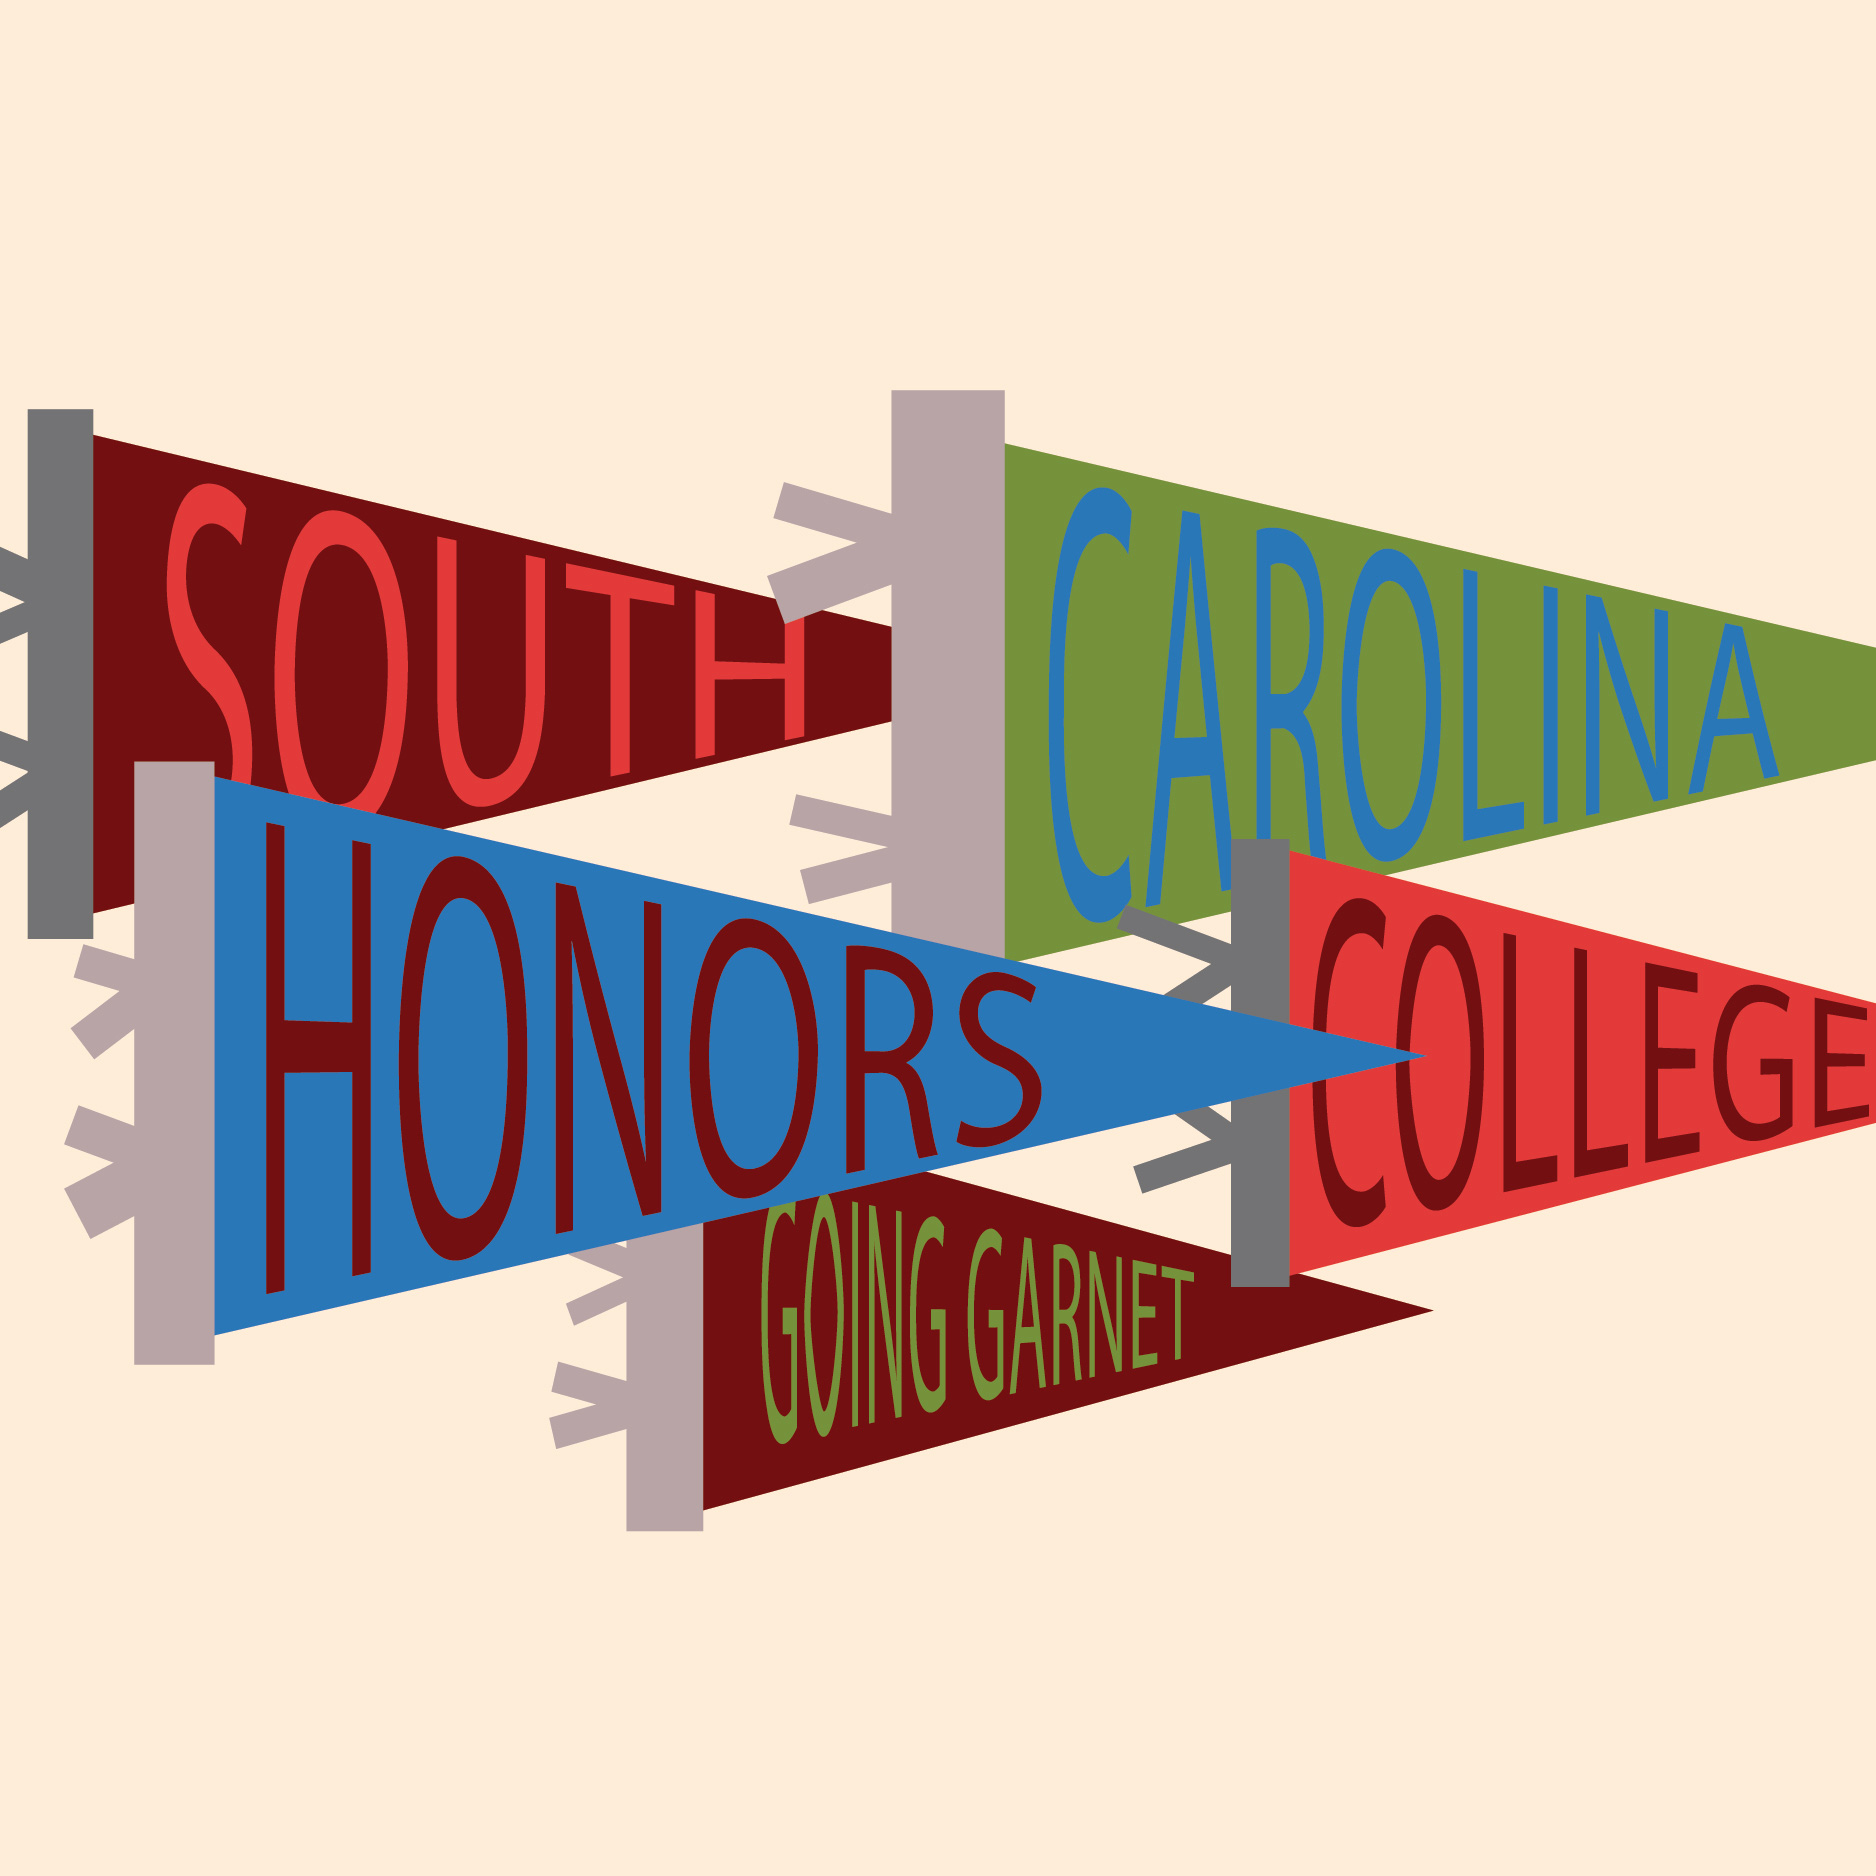 uofsc honors college going garnet pennants